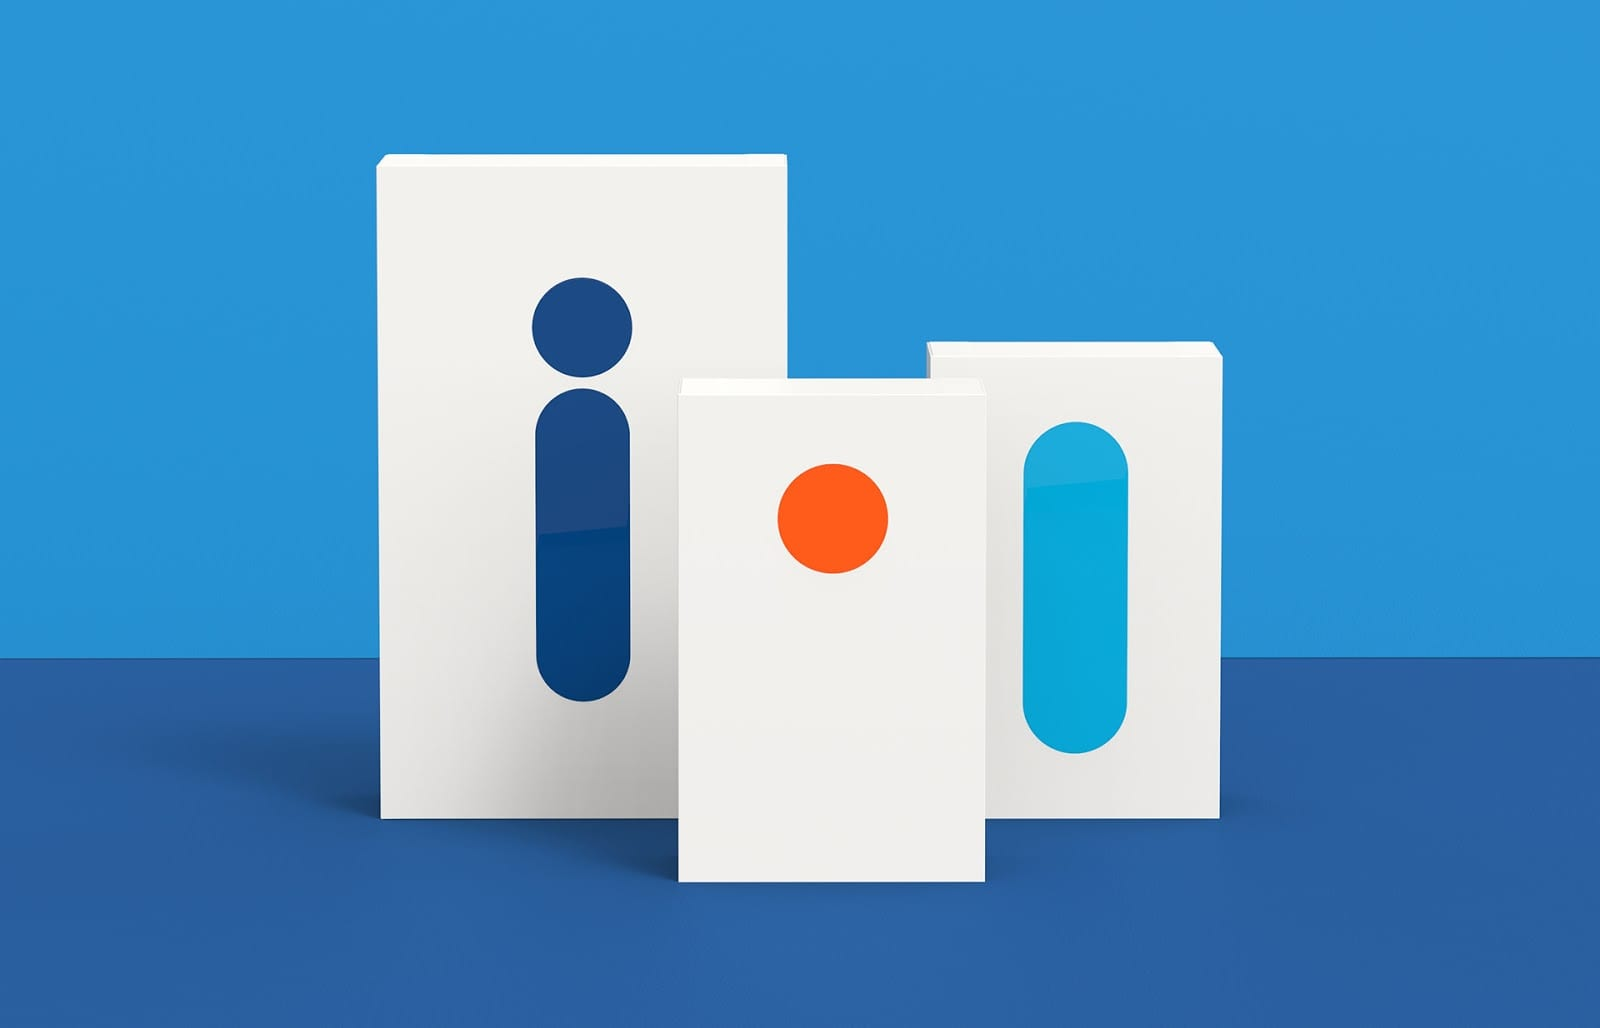 CliniCloud Packaging 01 - Ach, tie obaly – CliniCloud